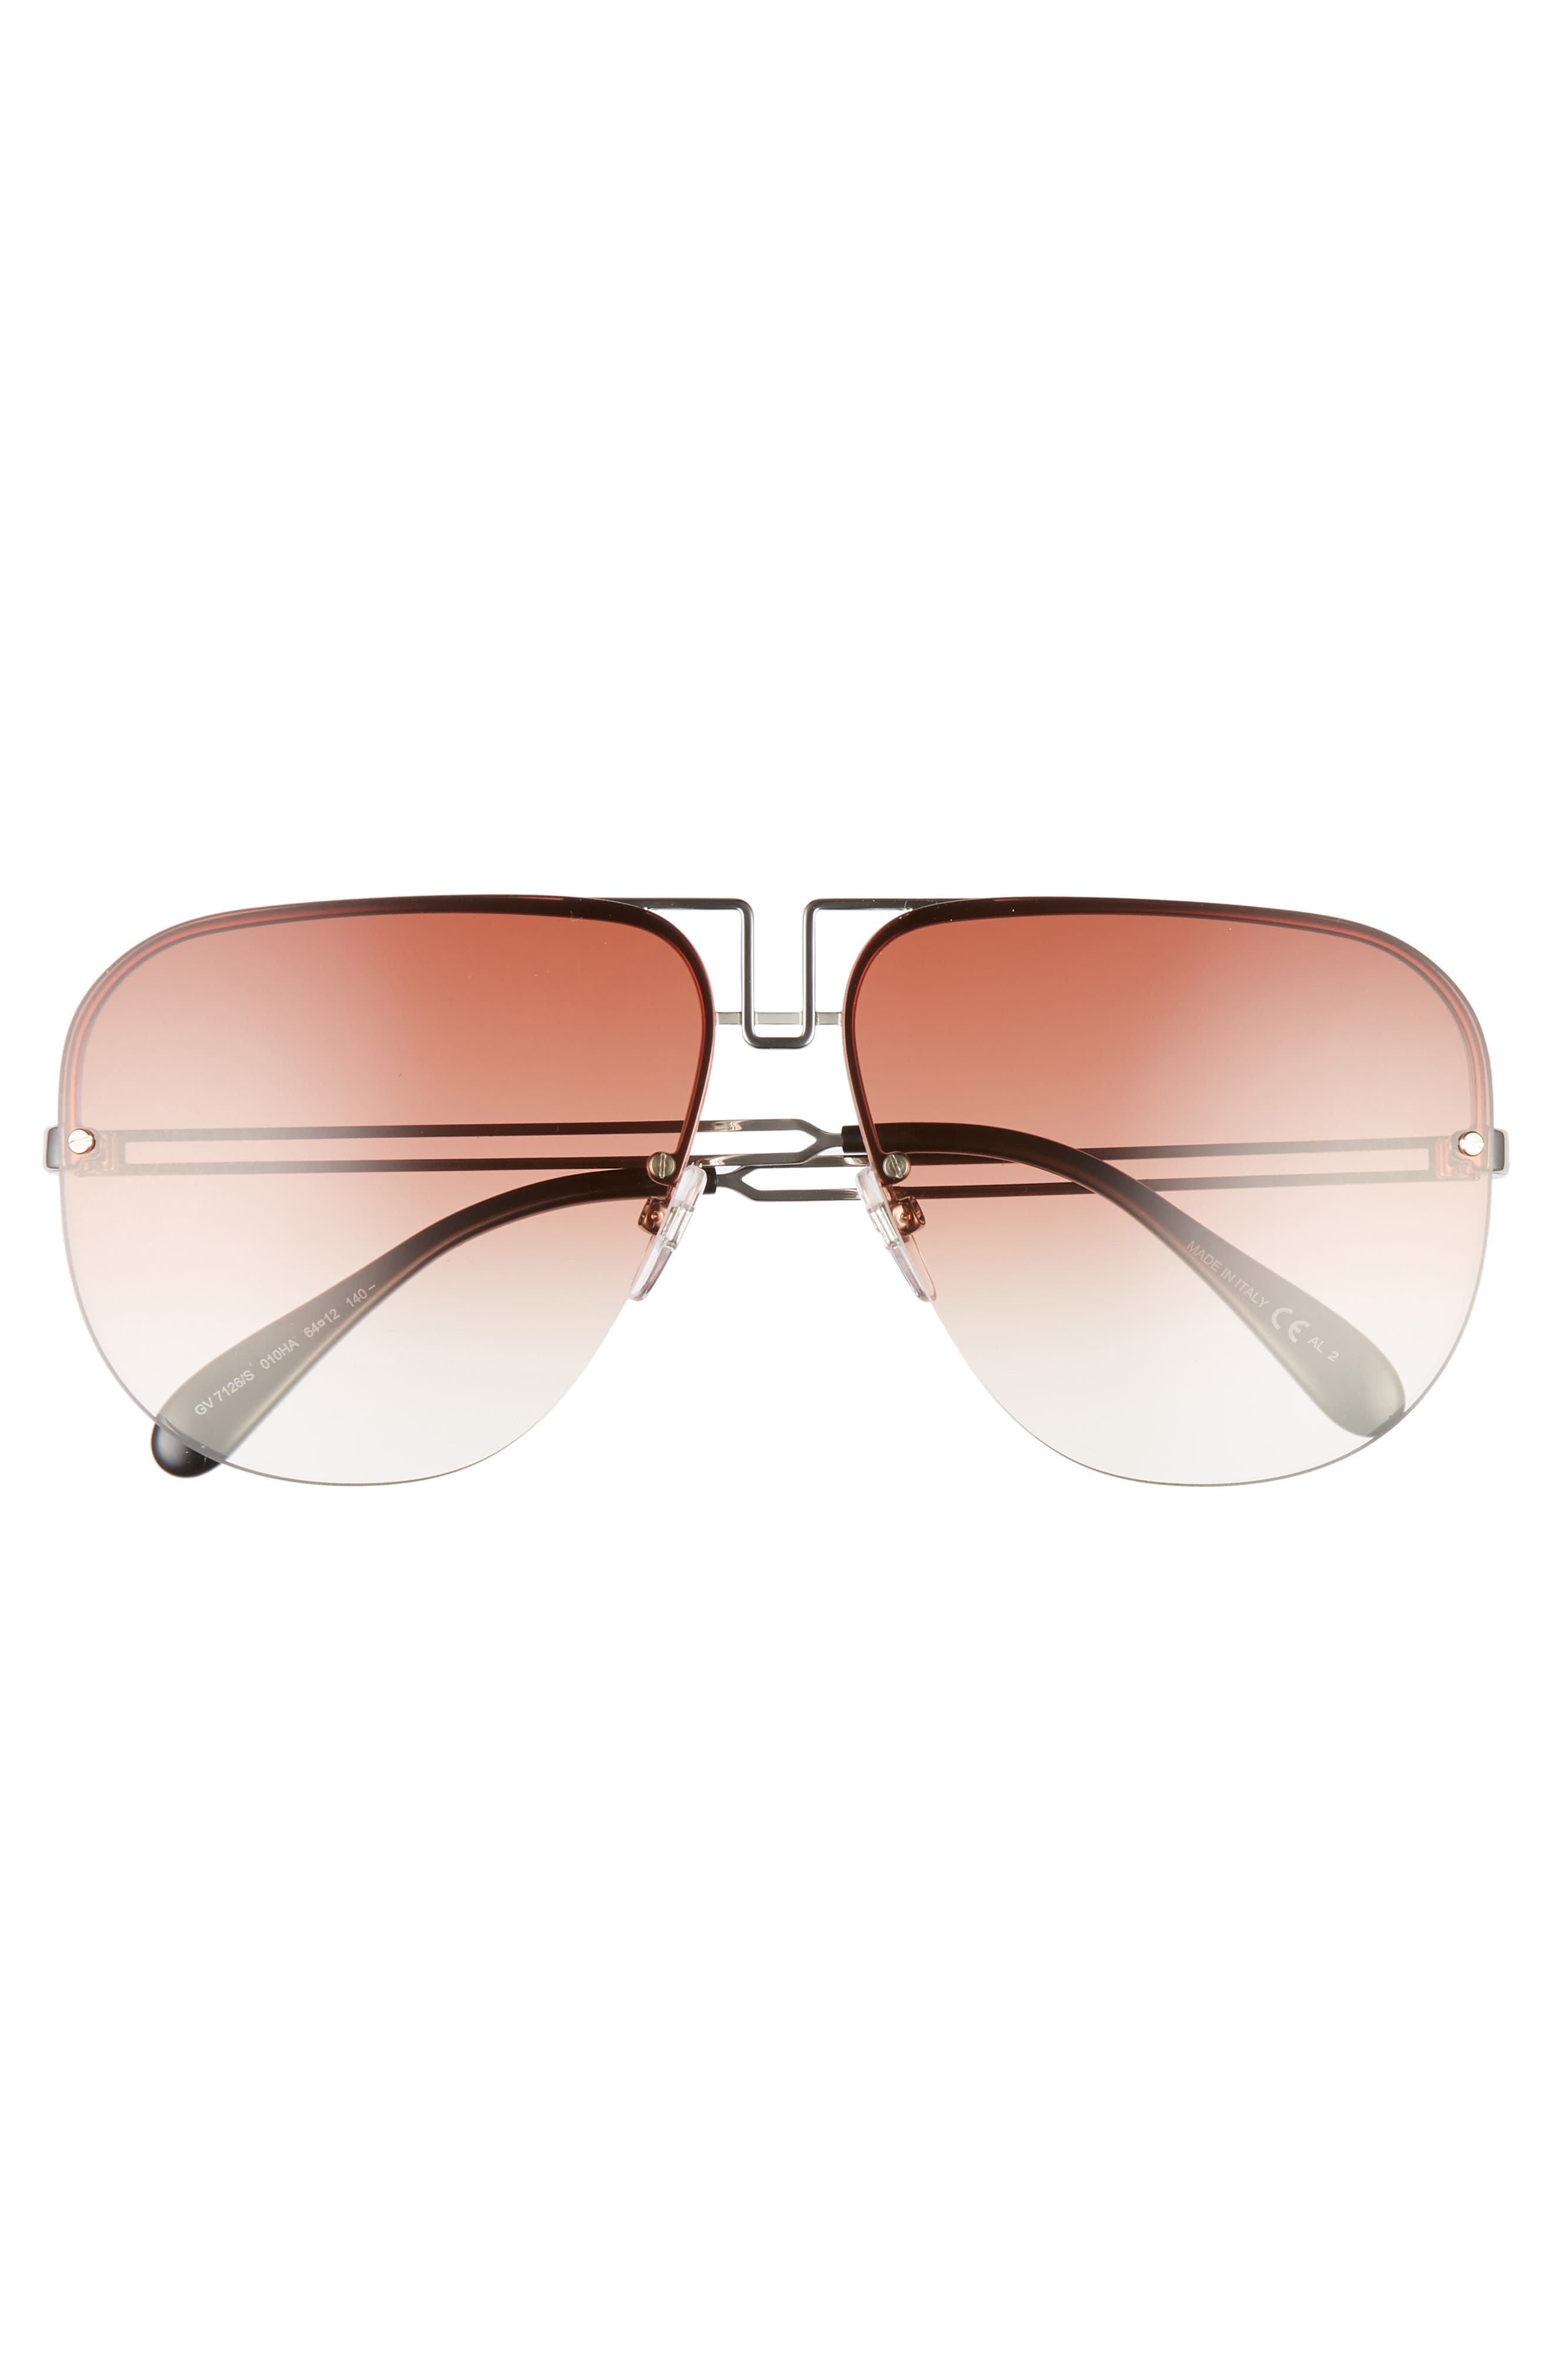 GIVENCHY,                             64mm Oversize Aviator Sunglasses,                             Alternate thumbnail 3, color,                             PALLADIUM/ COPPER